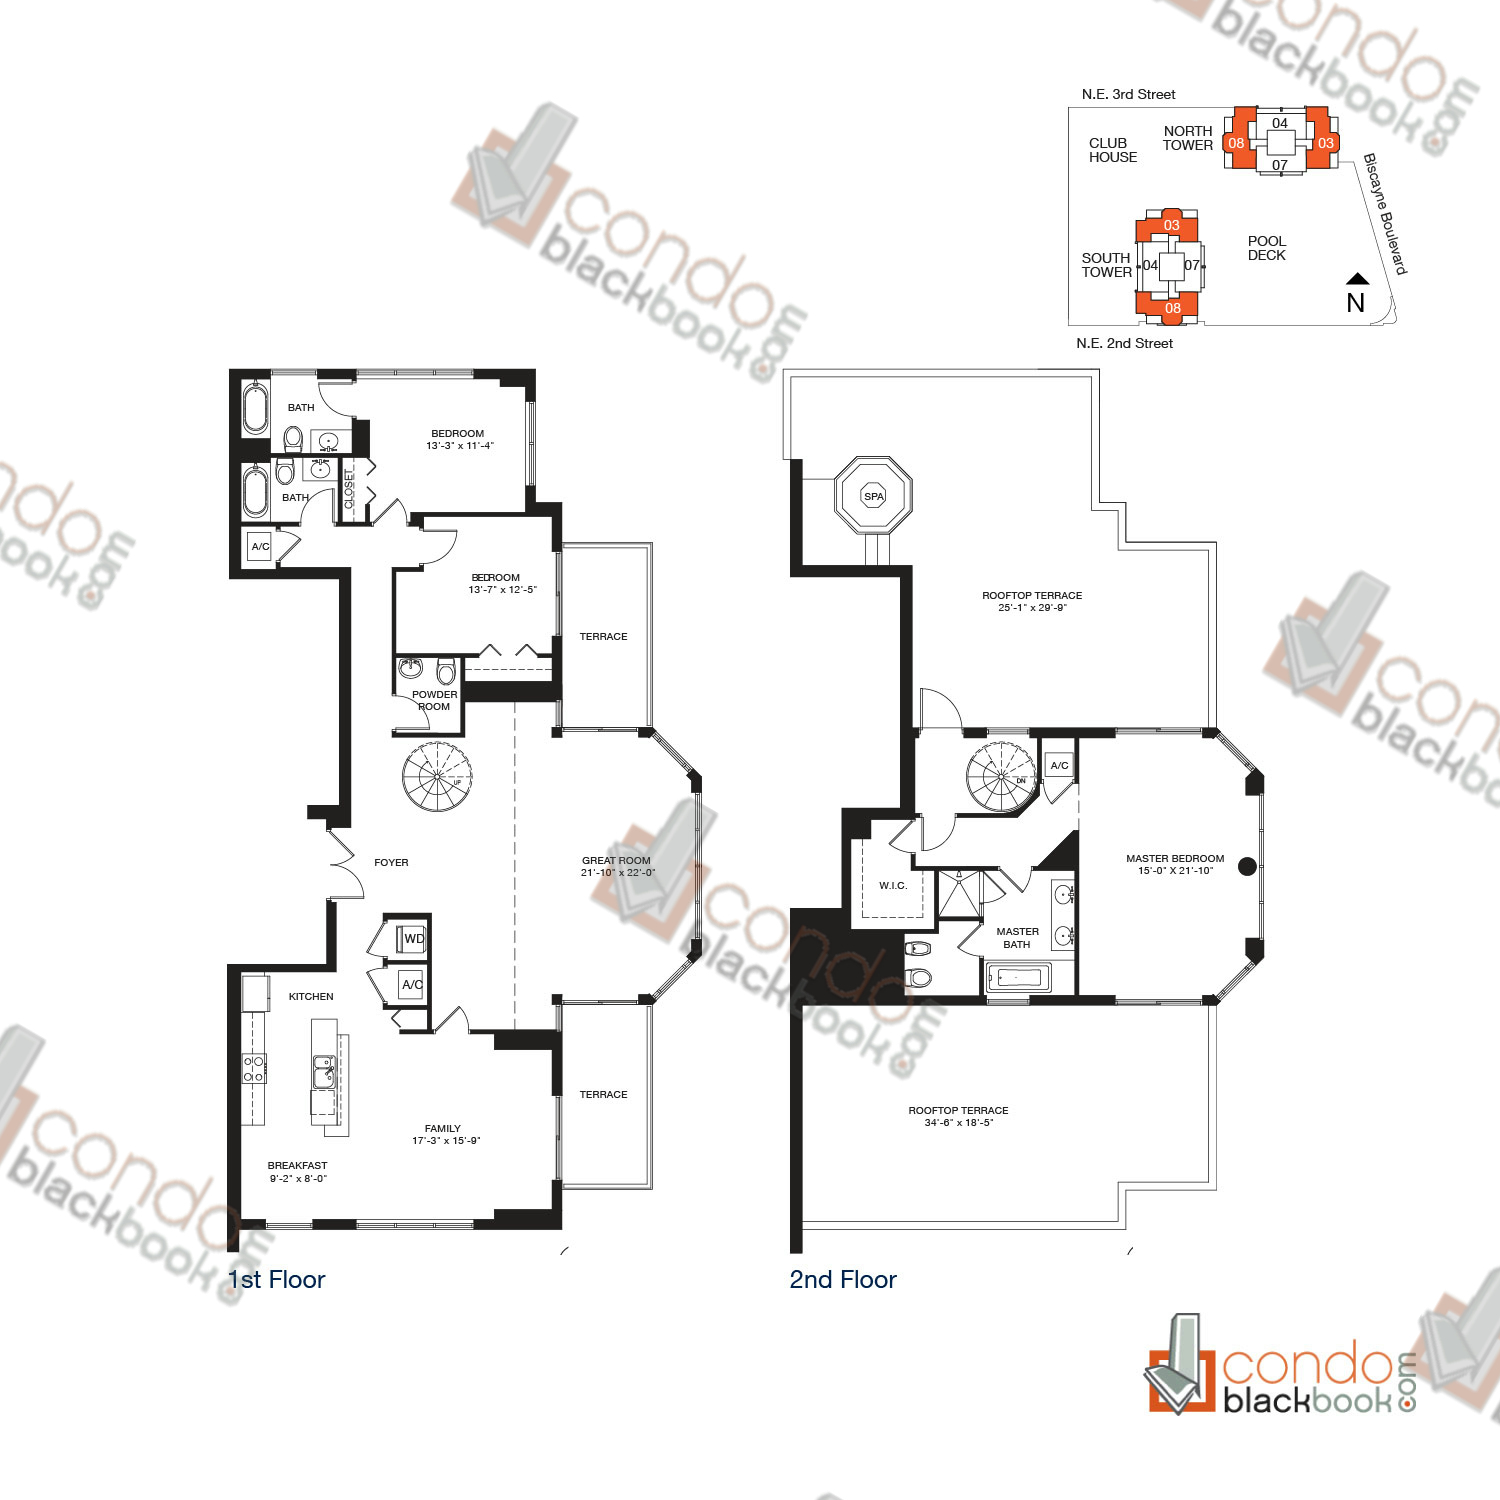 Floor plan for Vizcayne Downtown Miami Miami, model PENTHOUSE 10, line 03, 08, 3/3.5 bedrooms, 2,795 sq ft